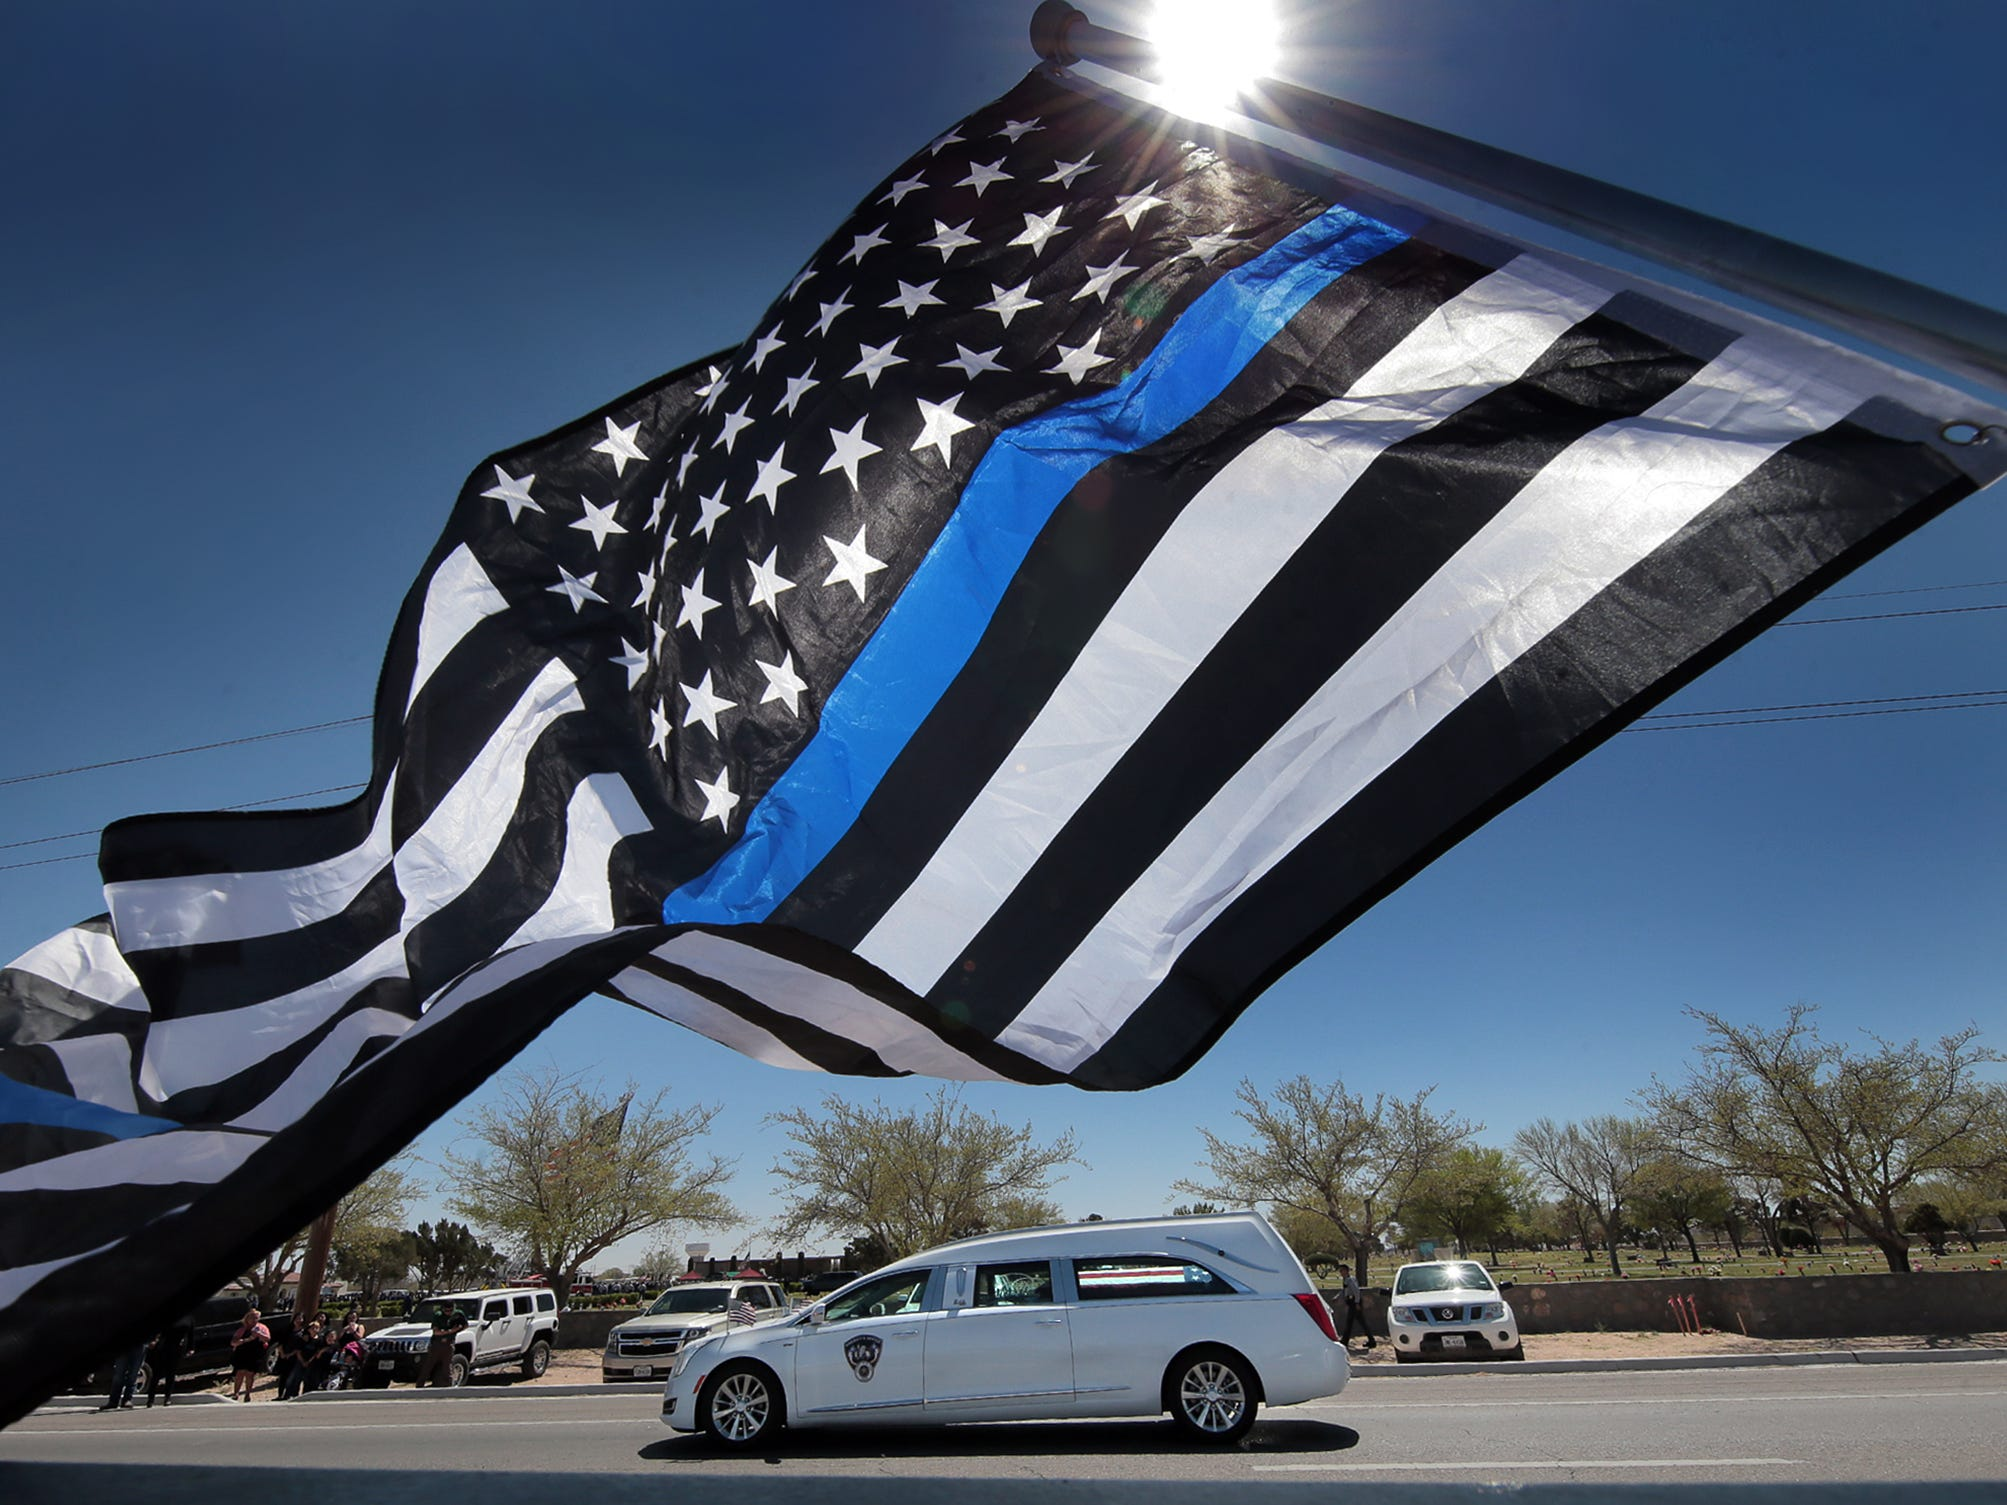 The hearse carrying El Paso County Sheriff's Deputy Peter Herrera's casket arrives at Evergreen Cemetery East for the slain deputy's graveside service Friday, March 29, 2019. Herrera, 35, died at a hospital Sunday, two days after being shot during a traffic stop in San Elizario, Texas. The suspect in the deputy's killing, Facundo Chavez, remains jailed ona capital murder charge.